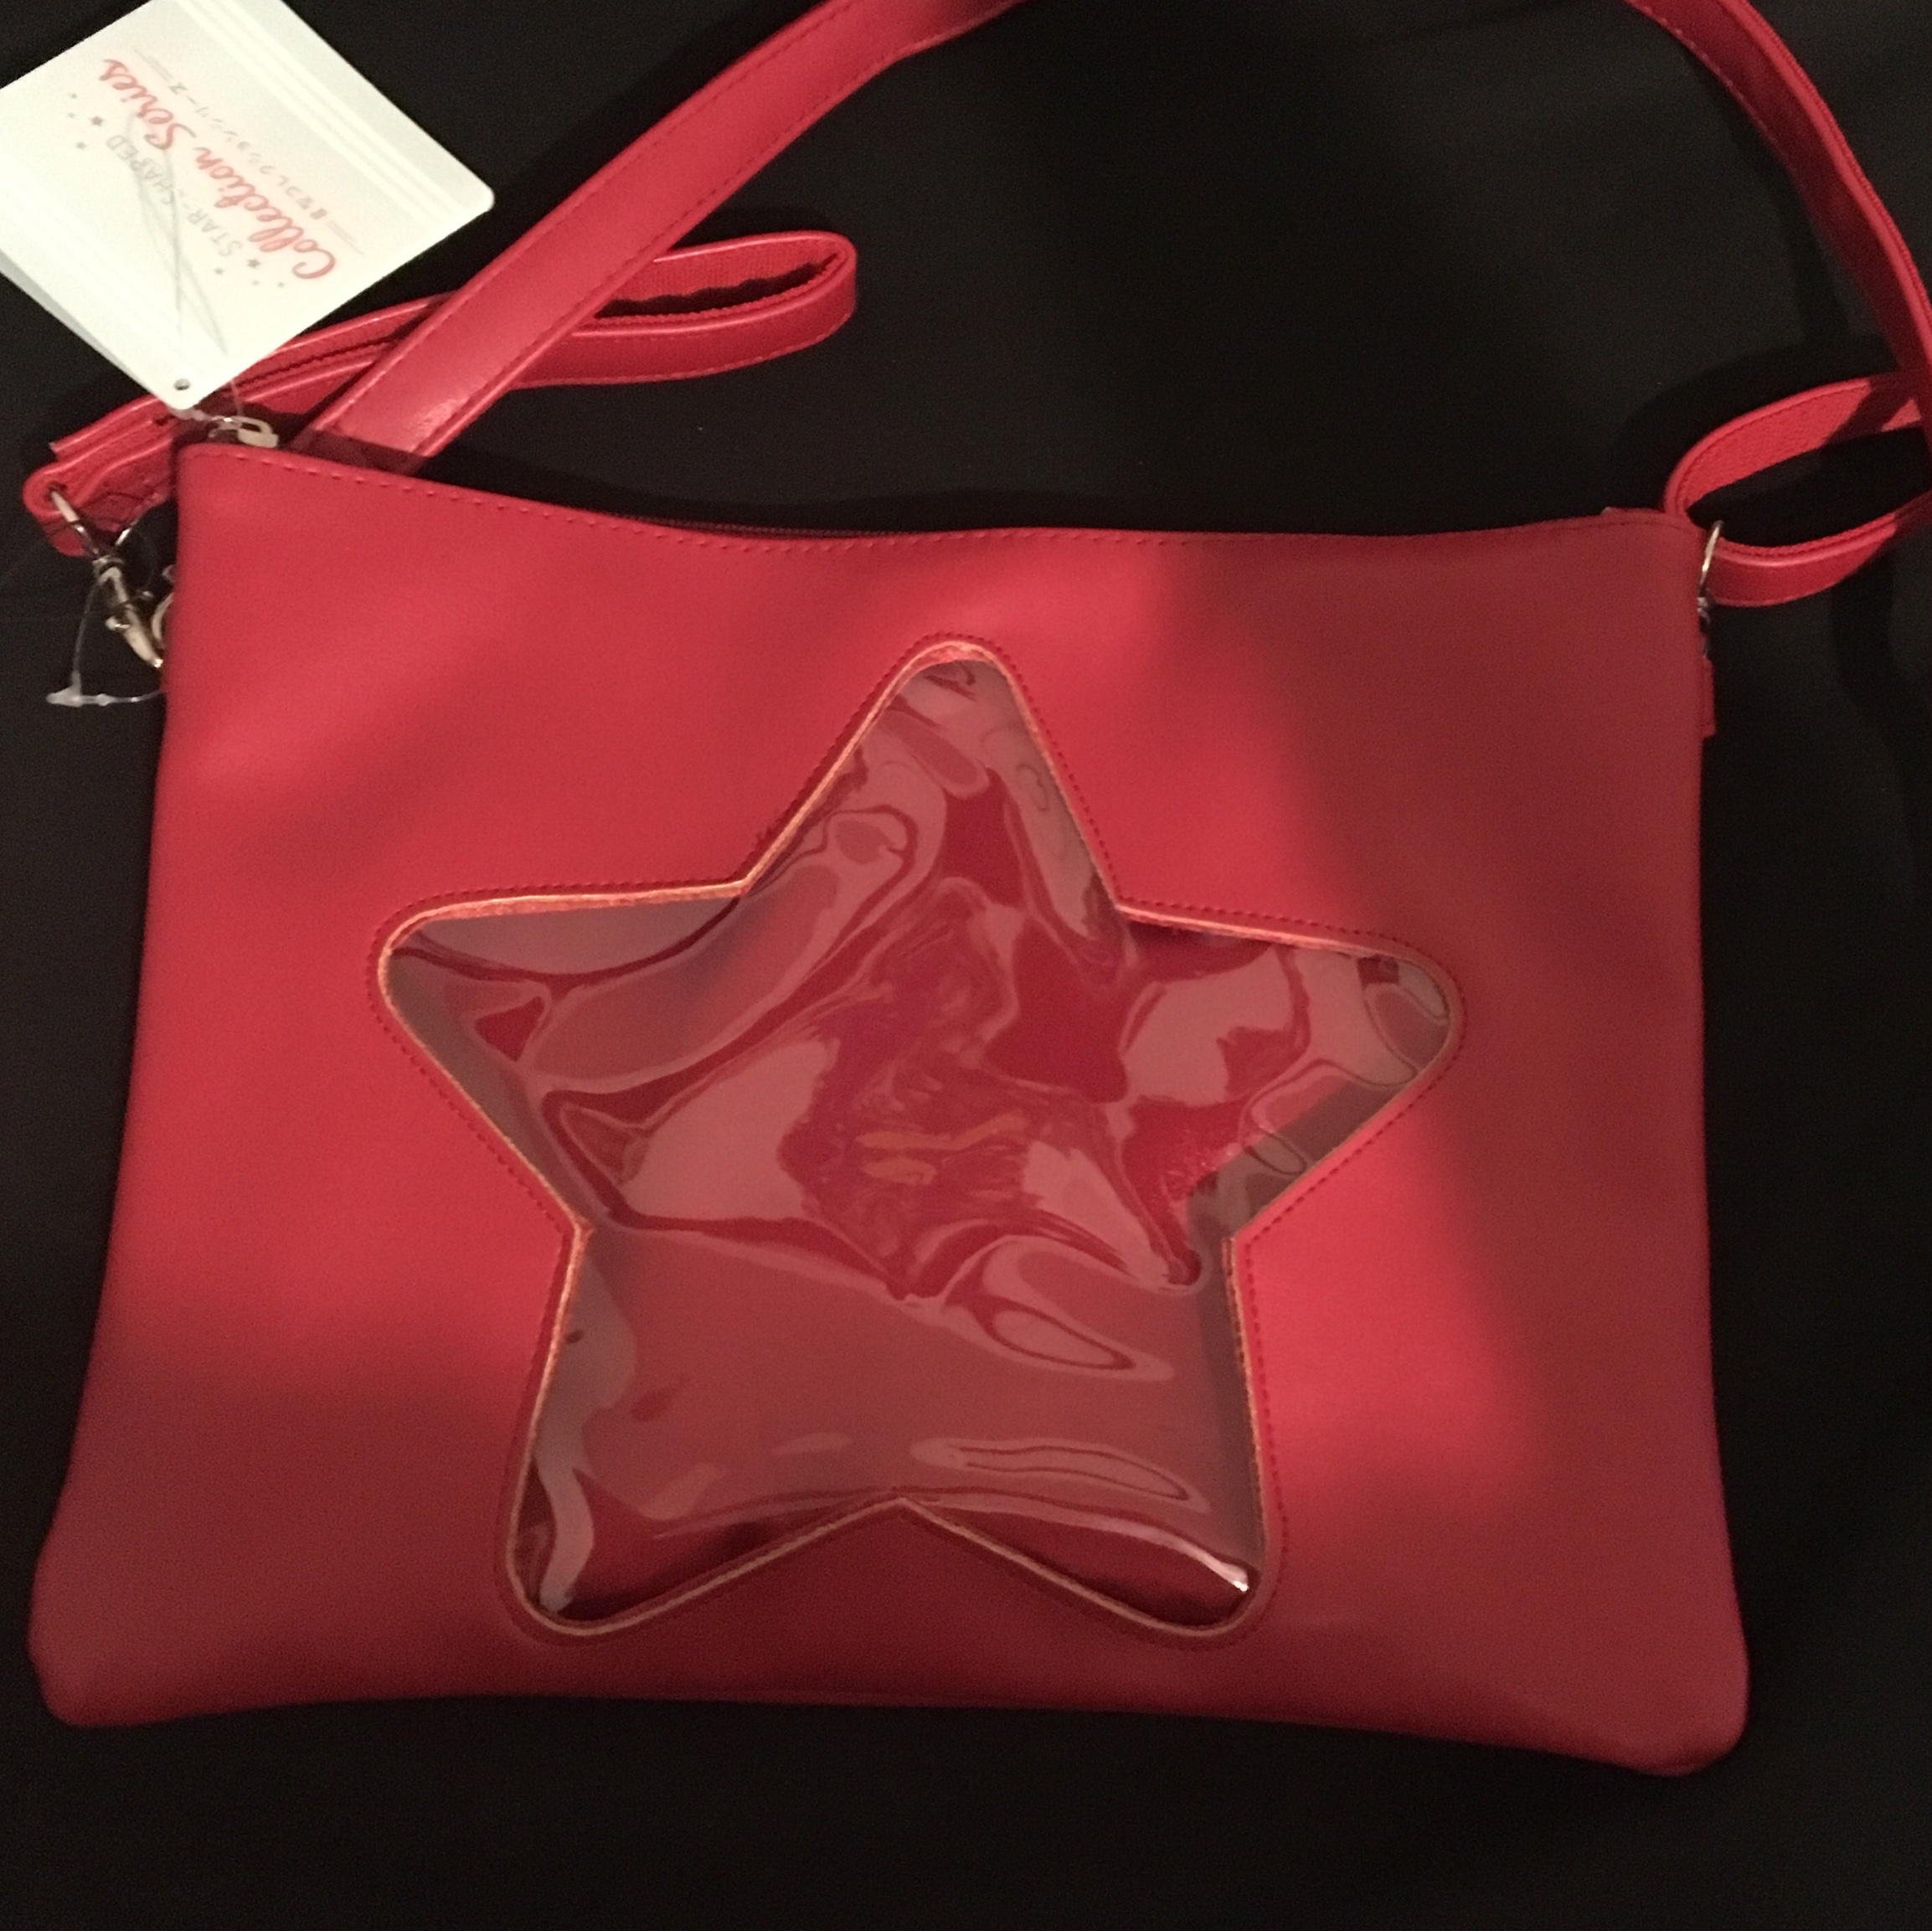 red star window itabag  tags: itabag red star    - Depop